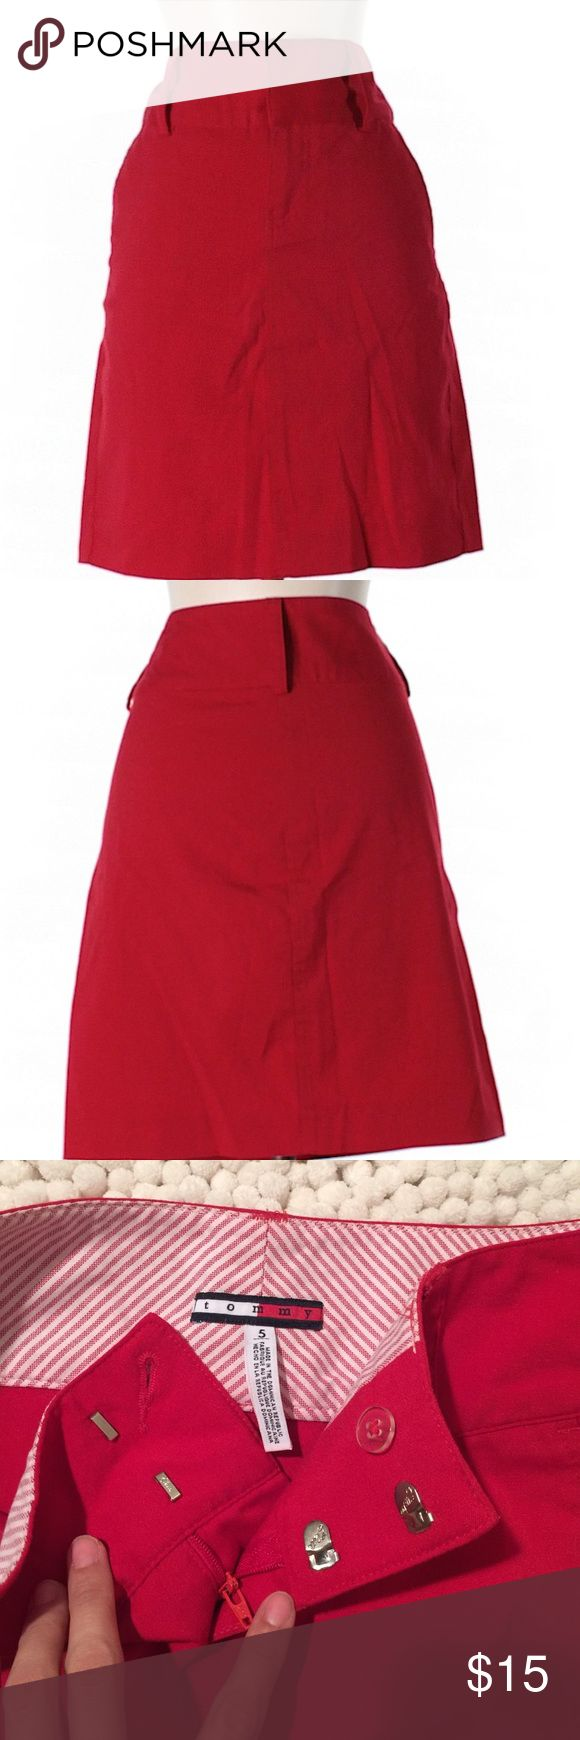 """Tommy Hilfiger Skirt Red Tommy Hildiger skirt in a size 5 Jr. 18"""" long. 64% polyester, 34% rayon and 2 Lycra. Two front pockets. In great conditions. Tommy Hilfiger Skirts Midi"""